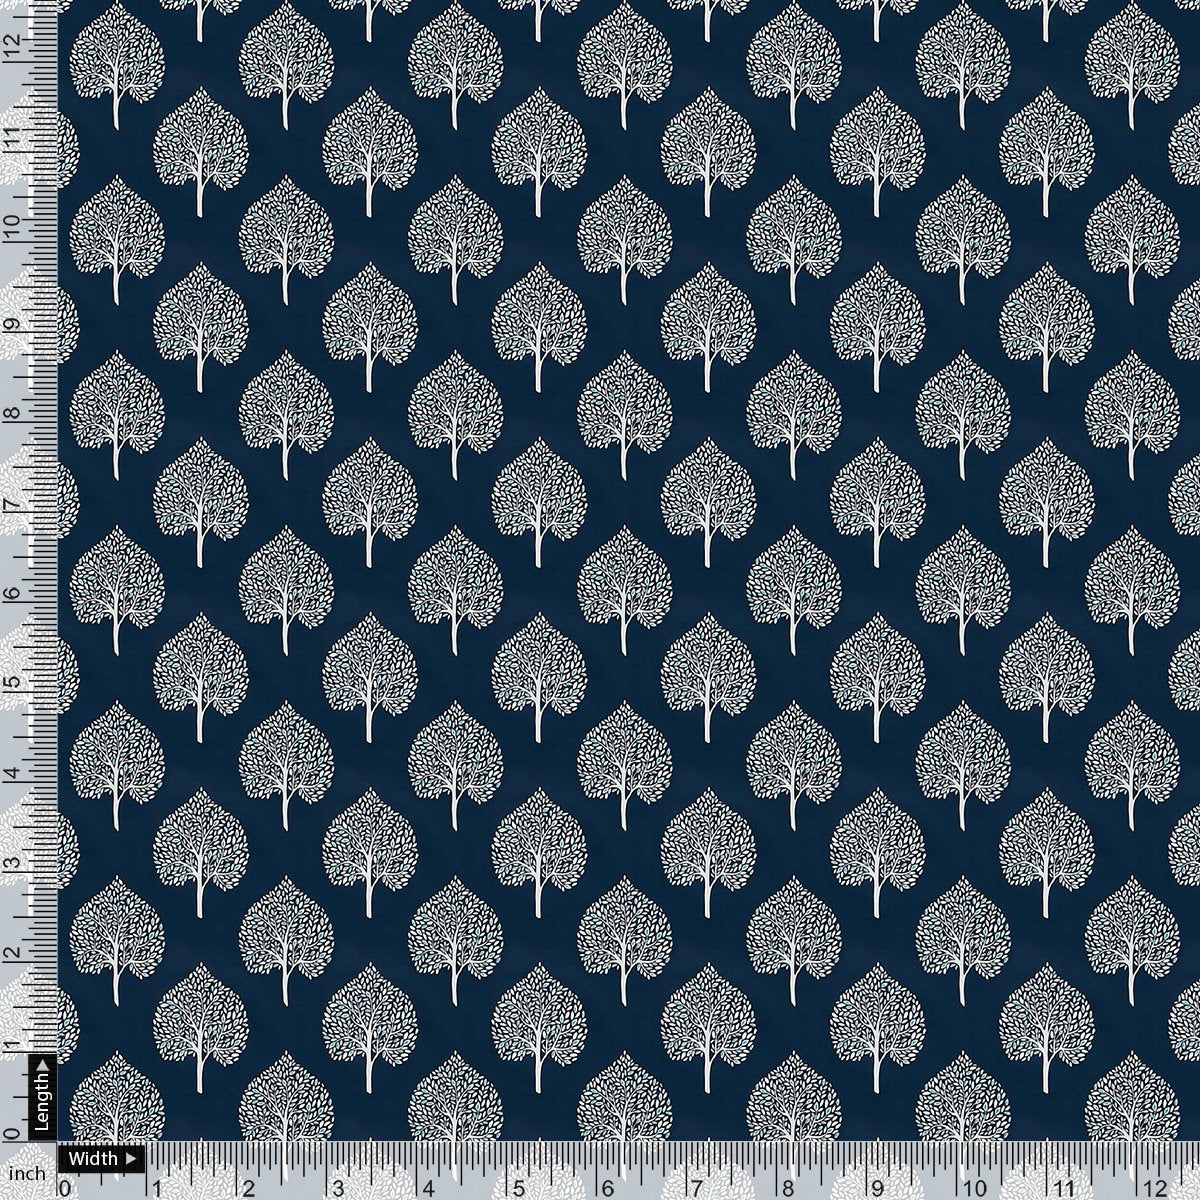 Stylized Mepal Leaf Motif Digital Printed Fabric - Upada Silk - FAB VOGUE Studio